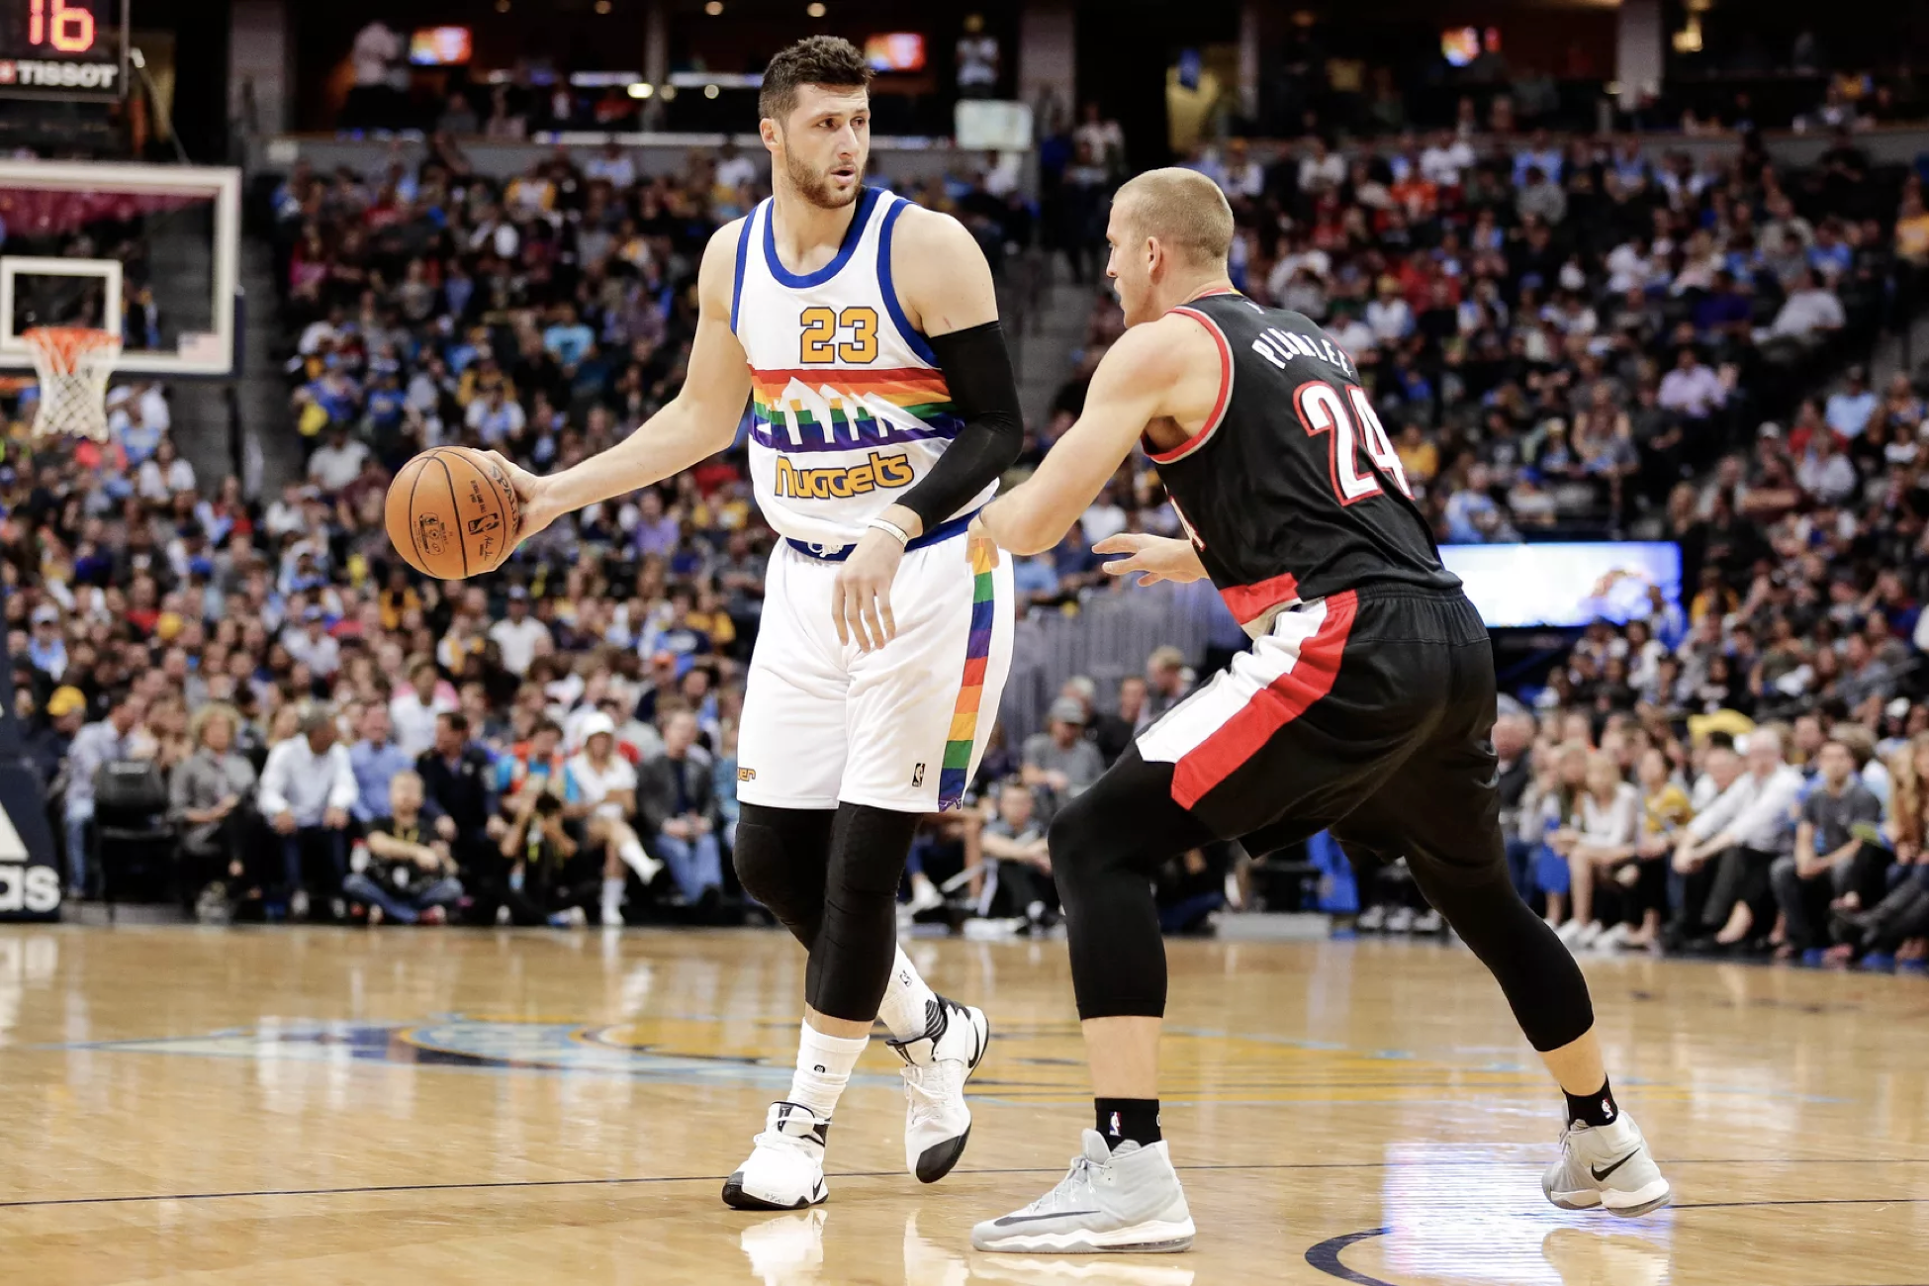 Jusif Nurkic scored 13 points, on five of five shooting, and pulled down seven rebounds in his Blazers debut against the Utah Jazz Wednesday night.